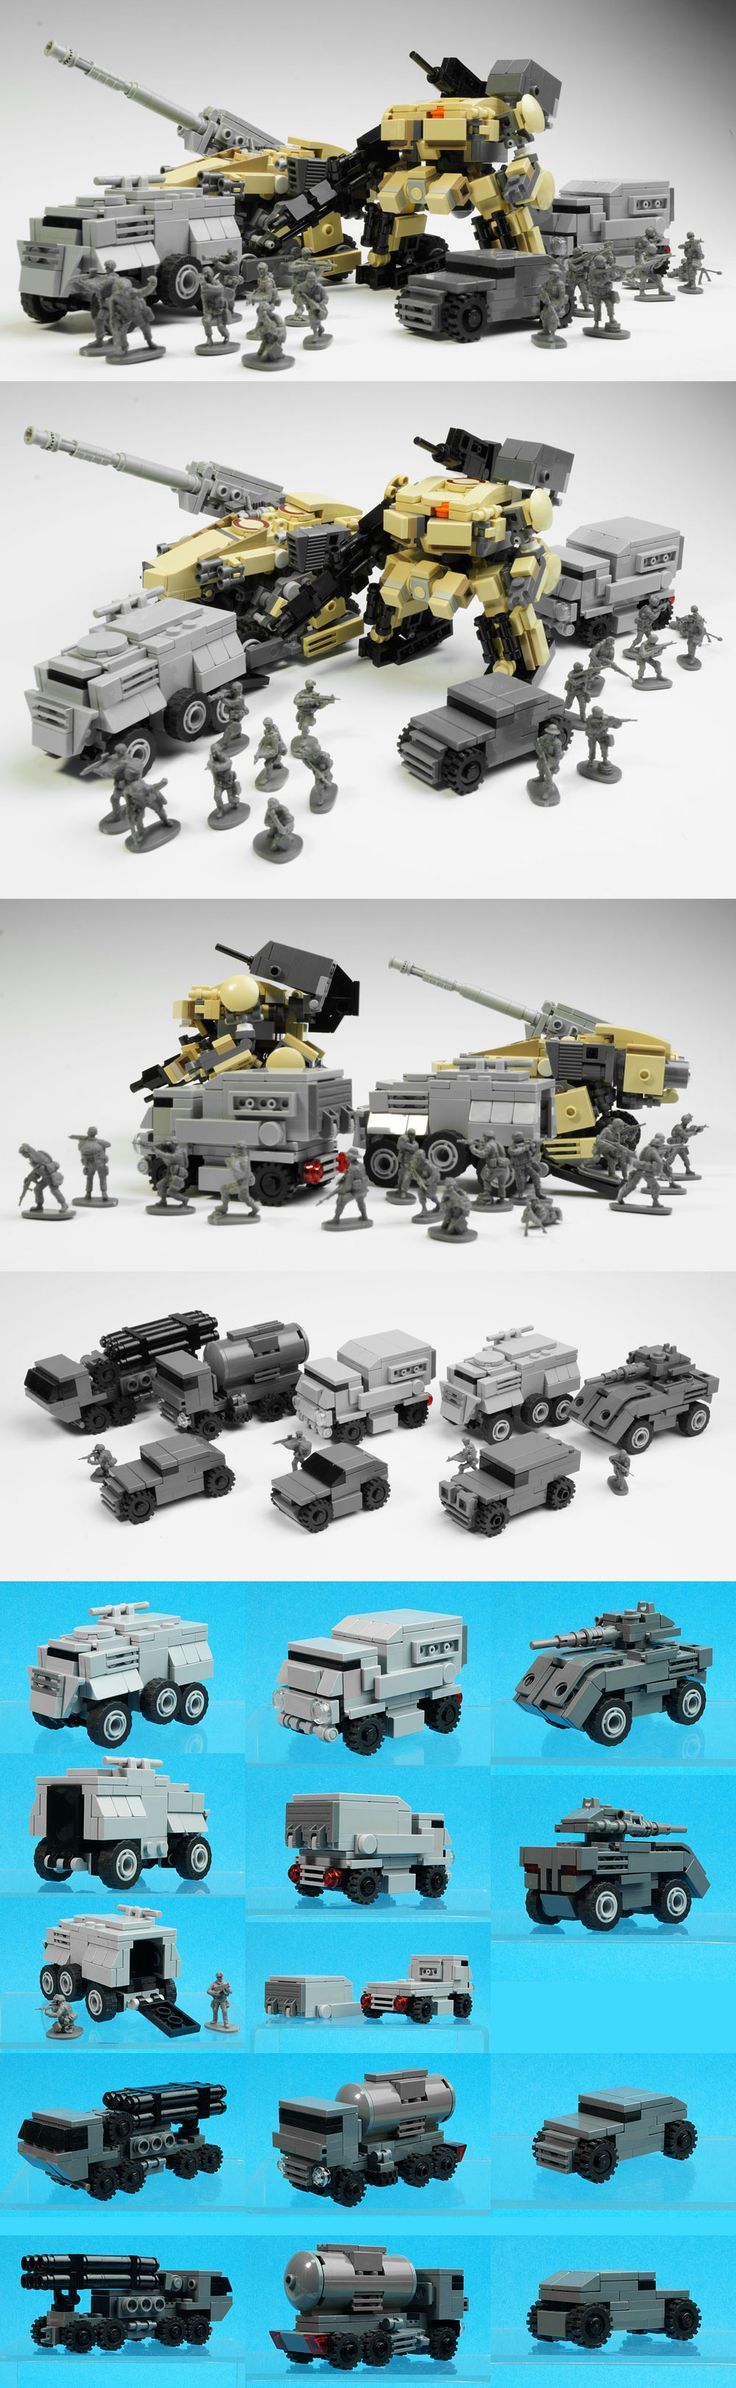 LEGO Mechs and assault/transport vehicles by Zizy